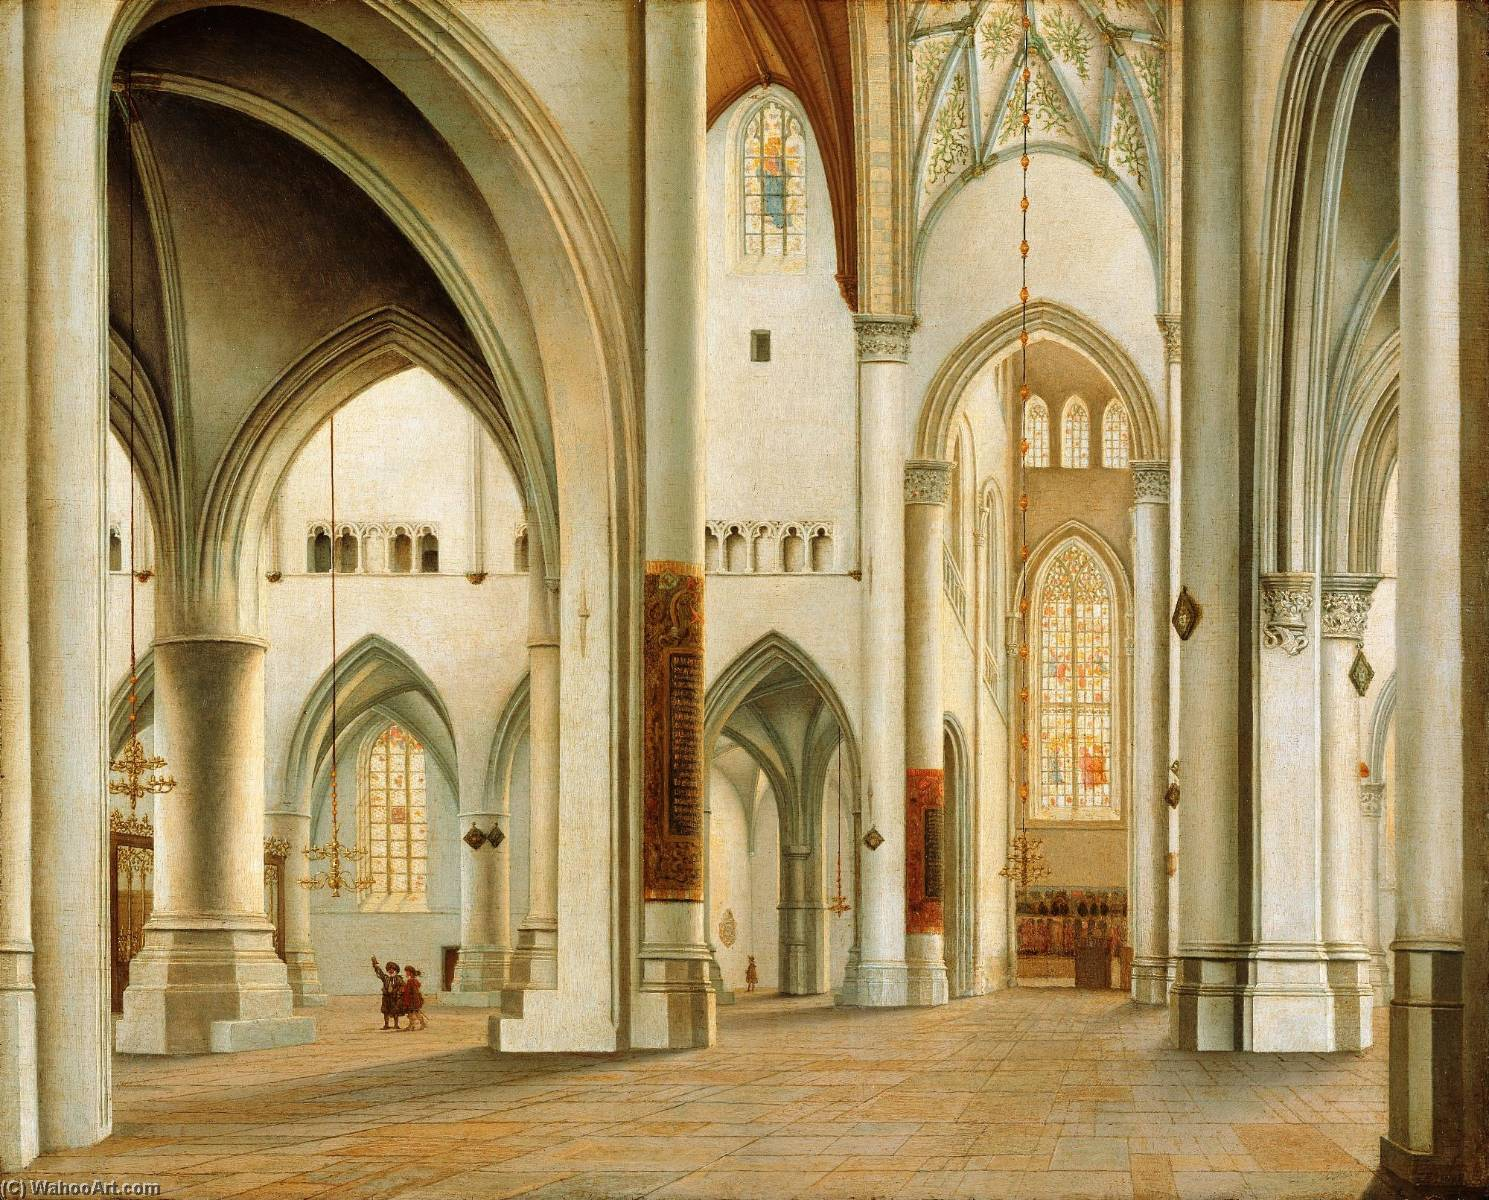 The Interior of St. Bavo, Haarlem, 1628 by Pieter Jansz Saenredam (1597-1665, Netherlands)